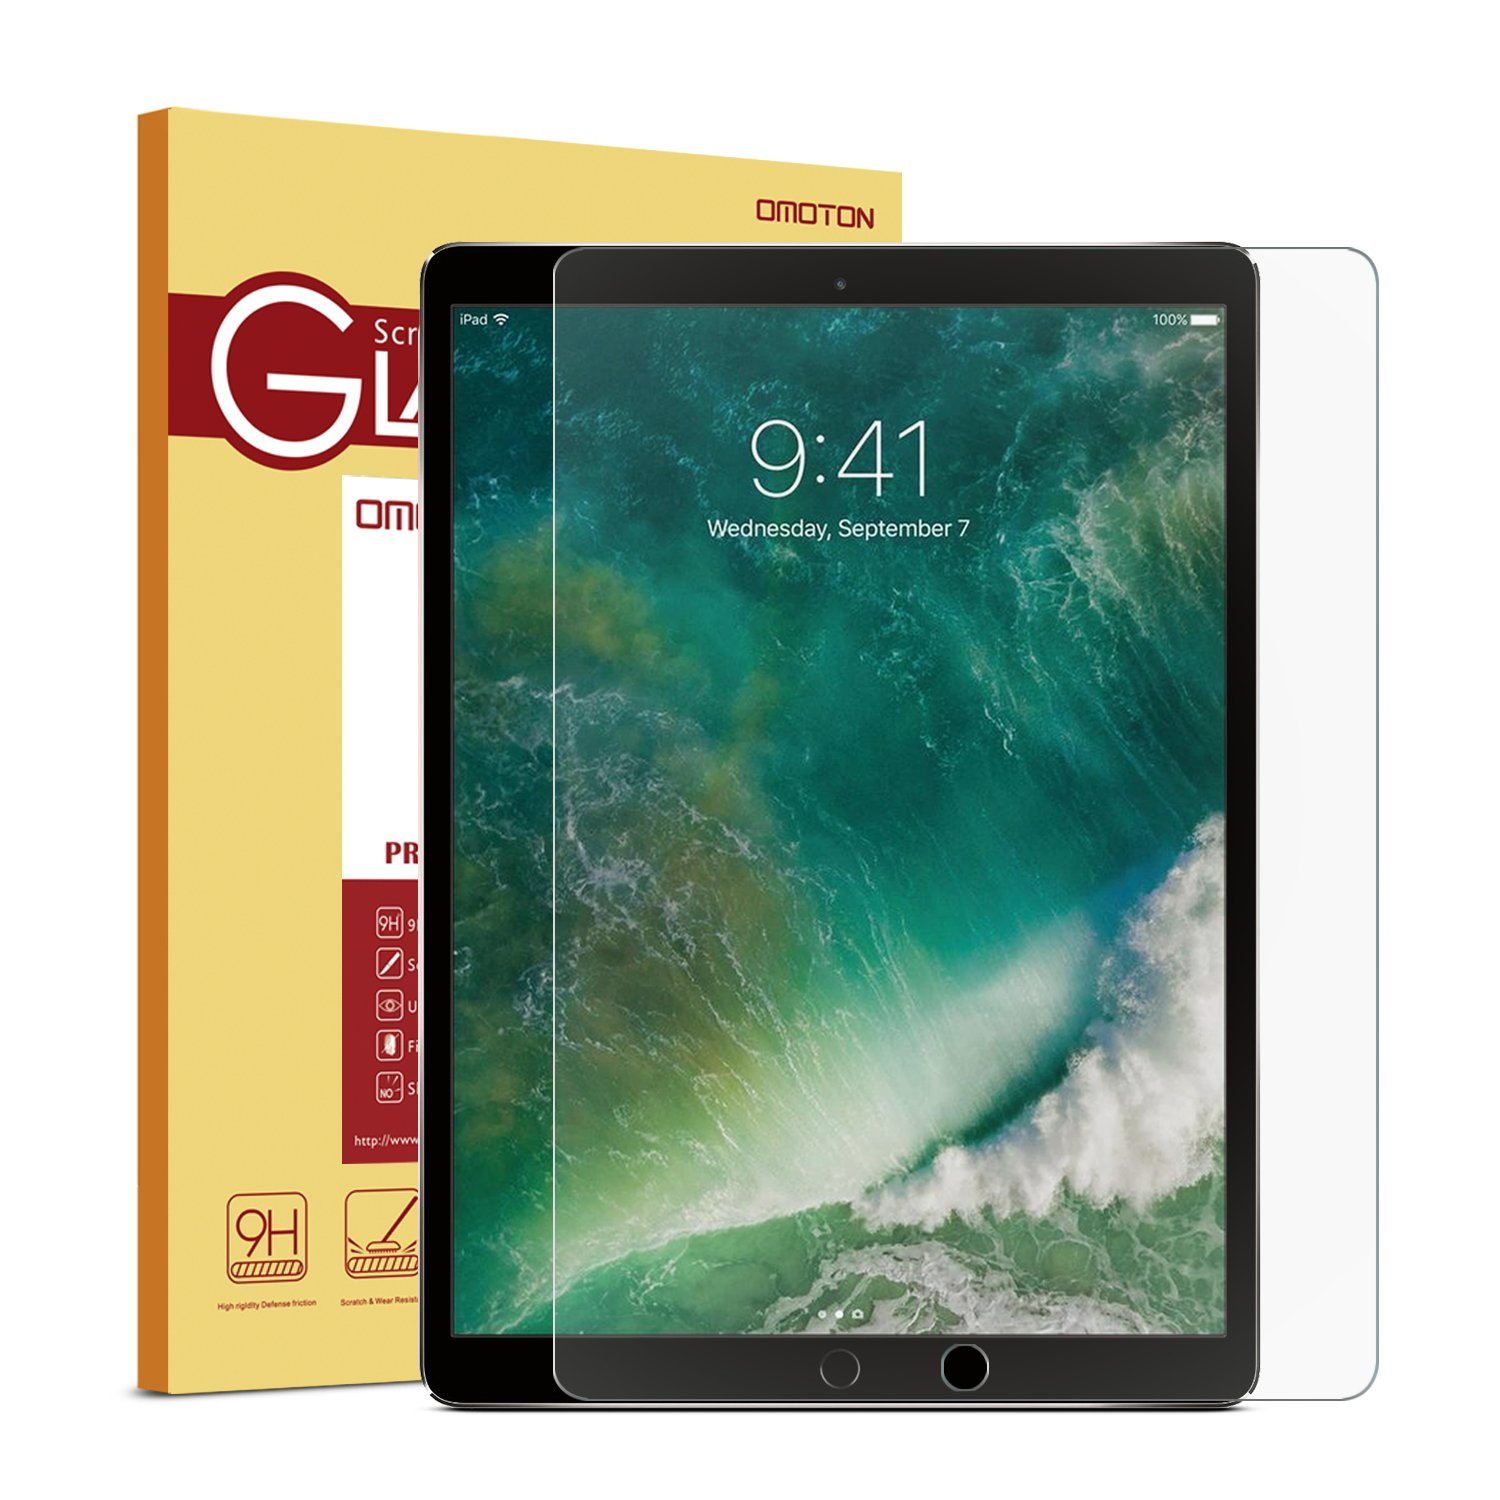 New iPad Pro 12.9 Screen Protector, OMOTON Tempered Glass Screen Protector with [High Responsivity] [High Definiton] [Bubble Free] for Apple iPad Pro 12.9 inch (2017 and 2015 version)